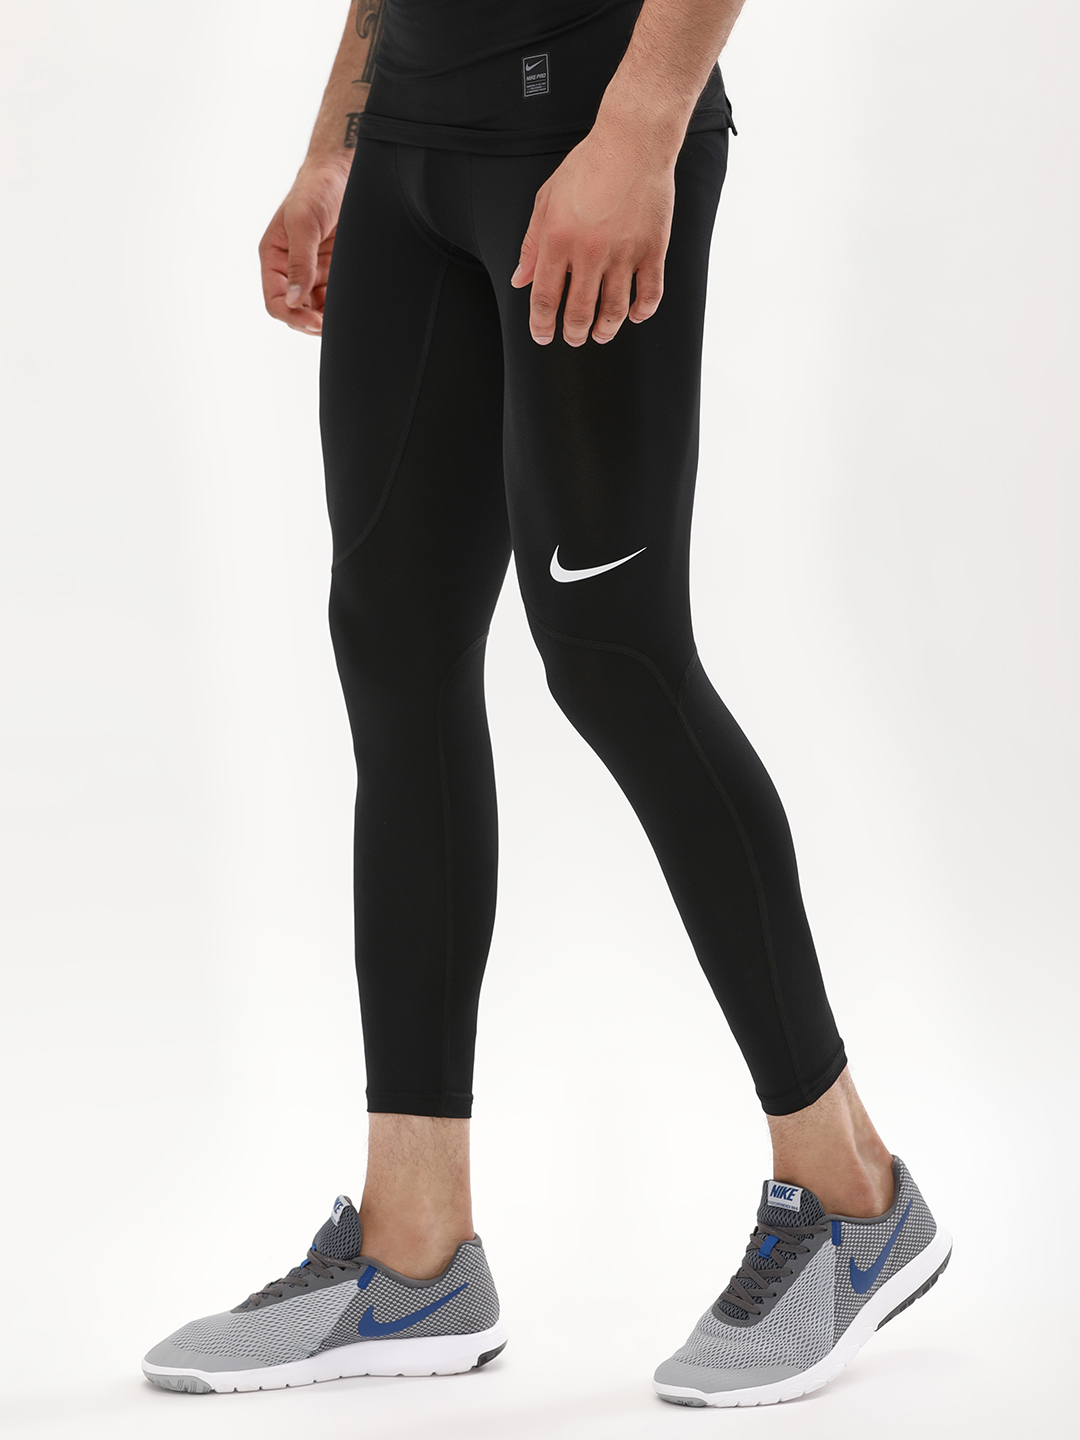 Nike Black Pro Compression Tights 1